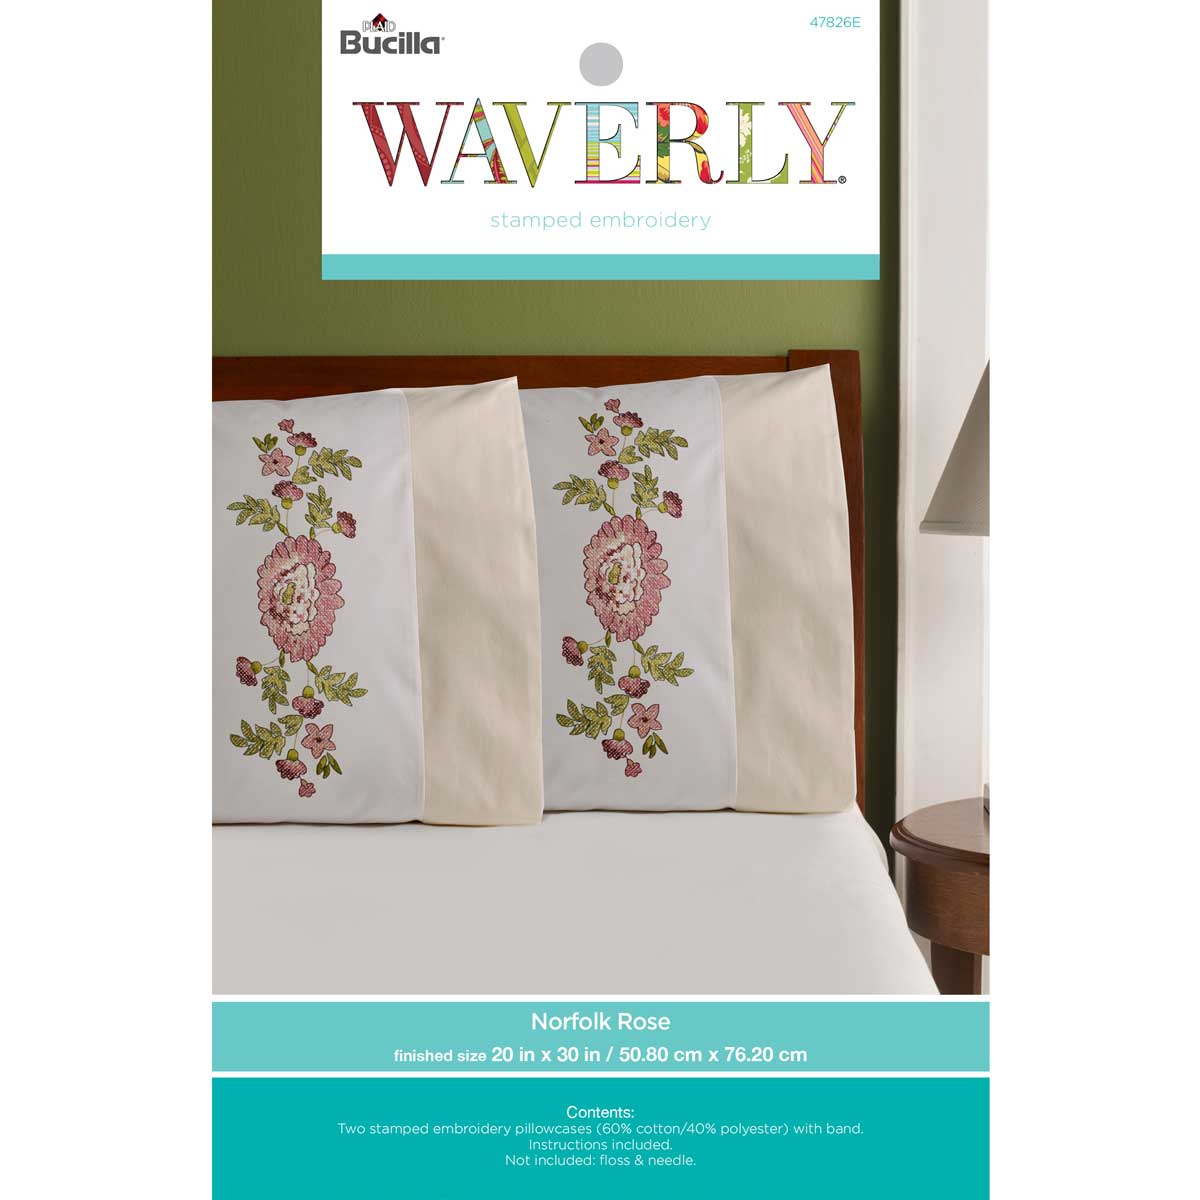 Bucilla ® Waverly ® Norfolk Rose Antique Collection Stamped Pillowcase Pair - 47826